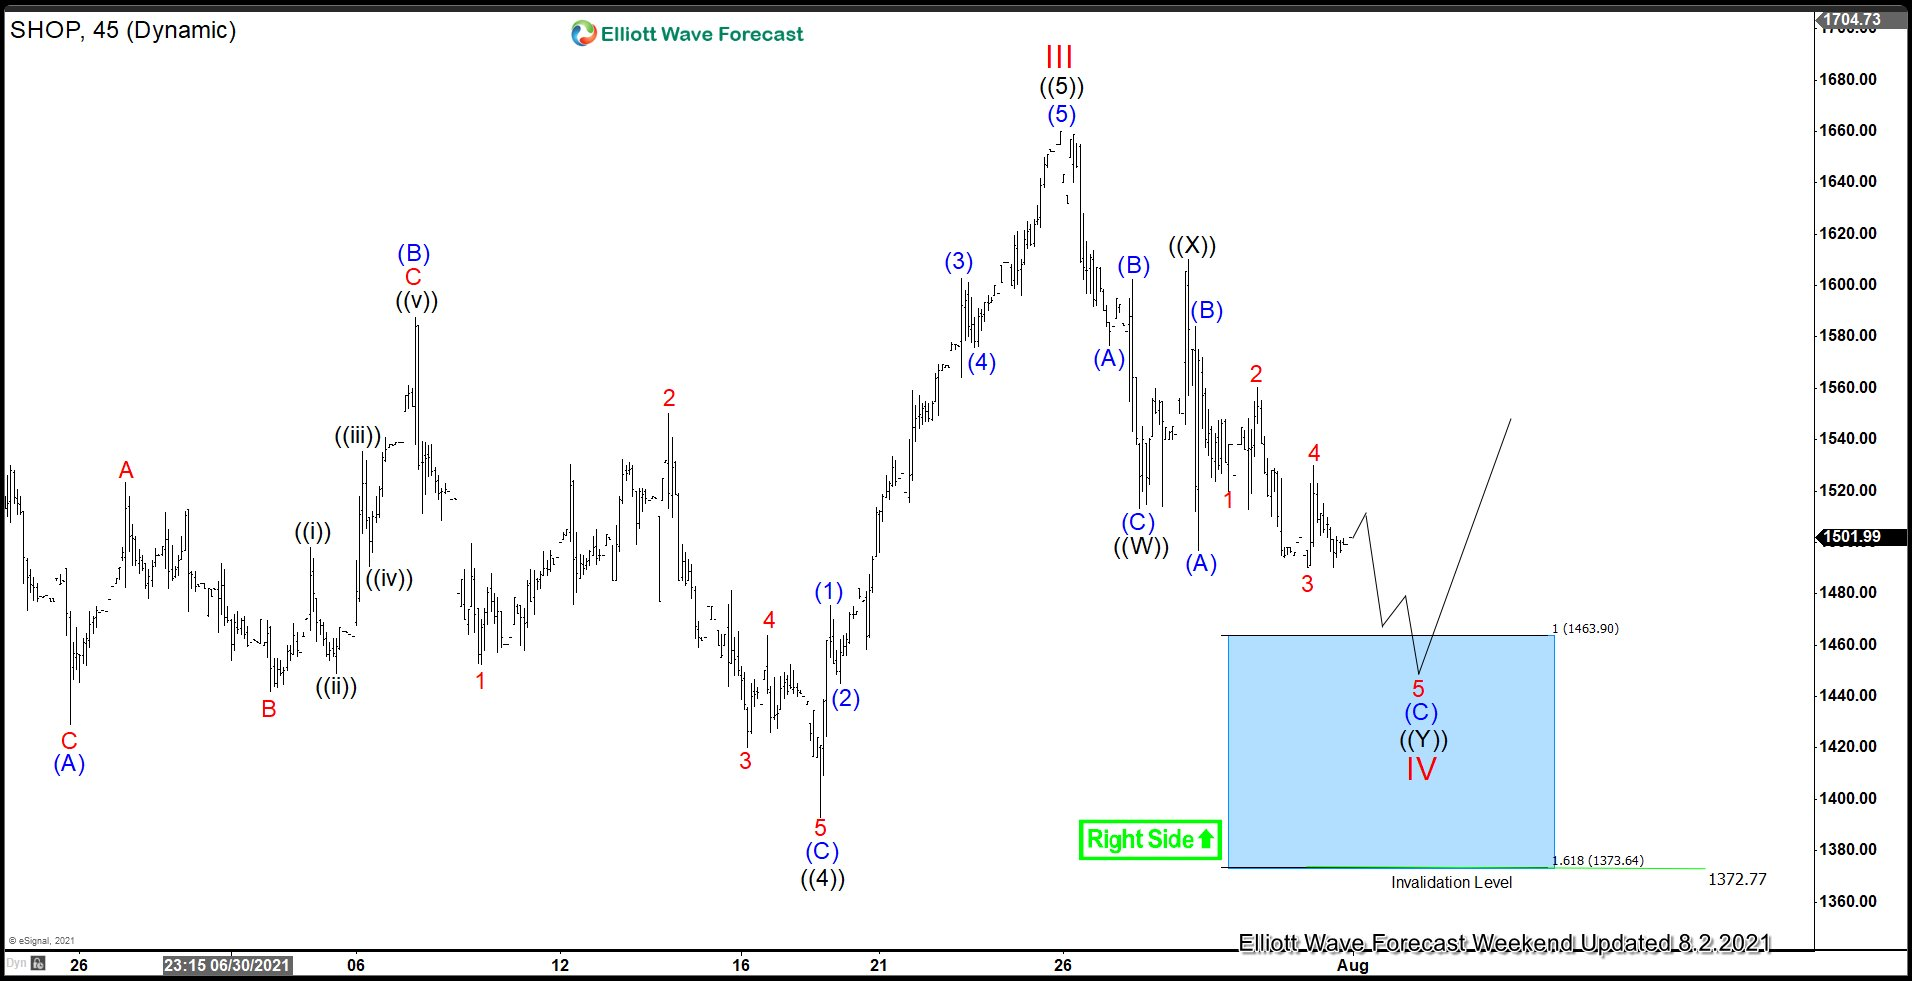 Shopify (NYSE: SHOP) Pulling Back in Wave IV